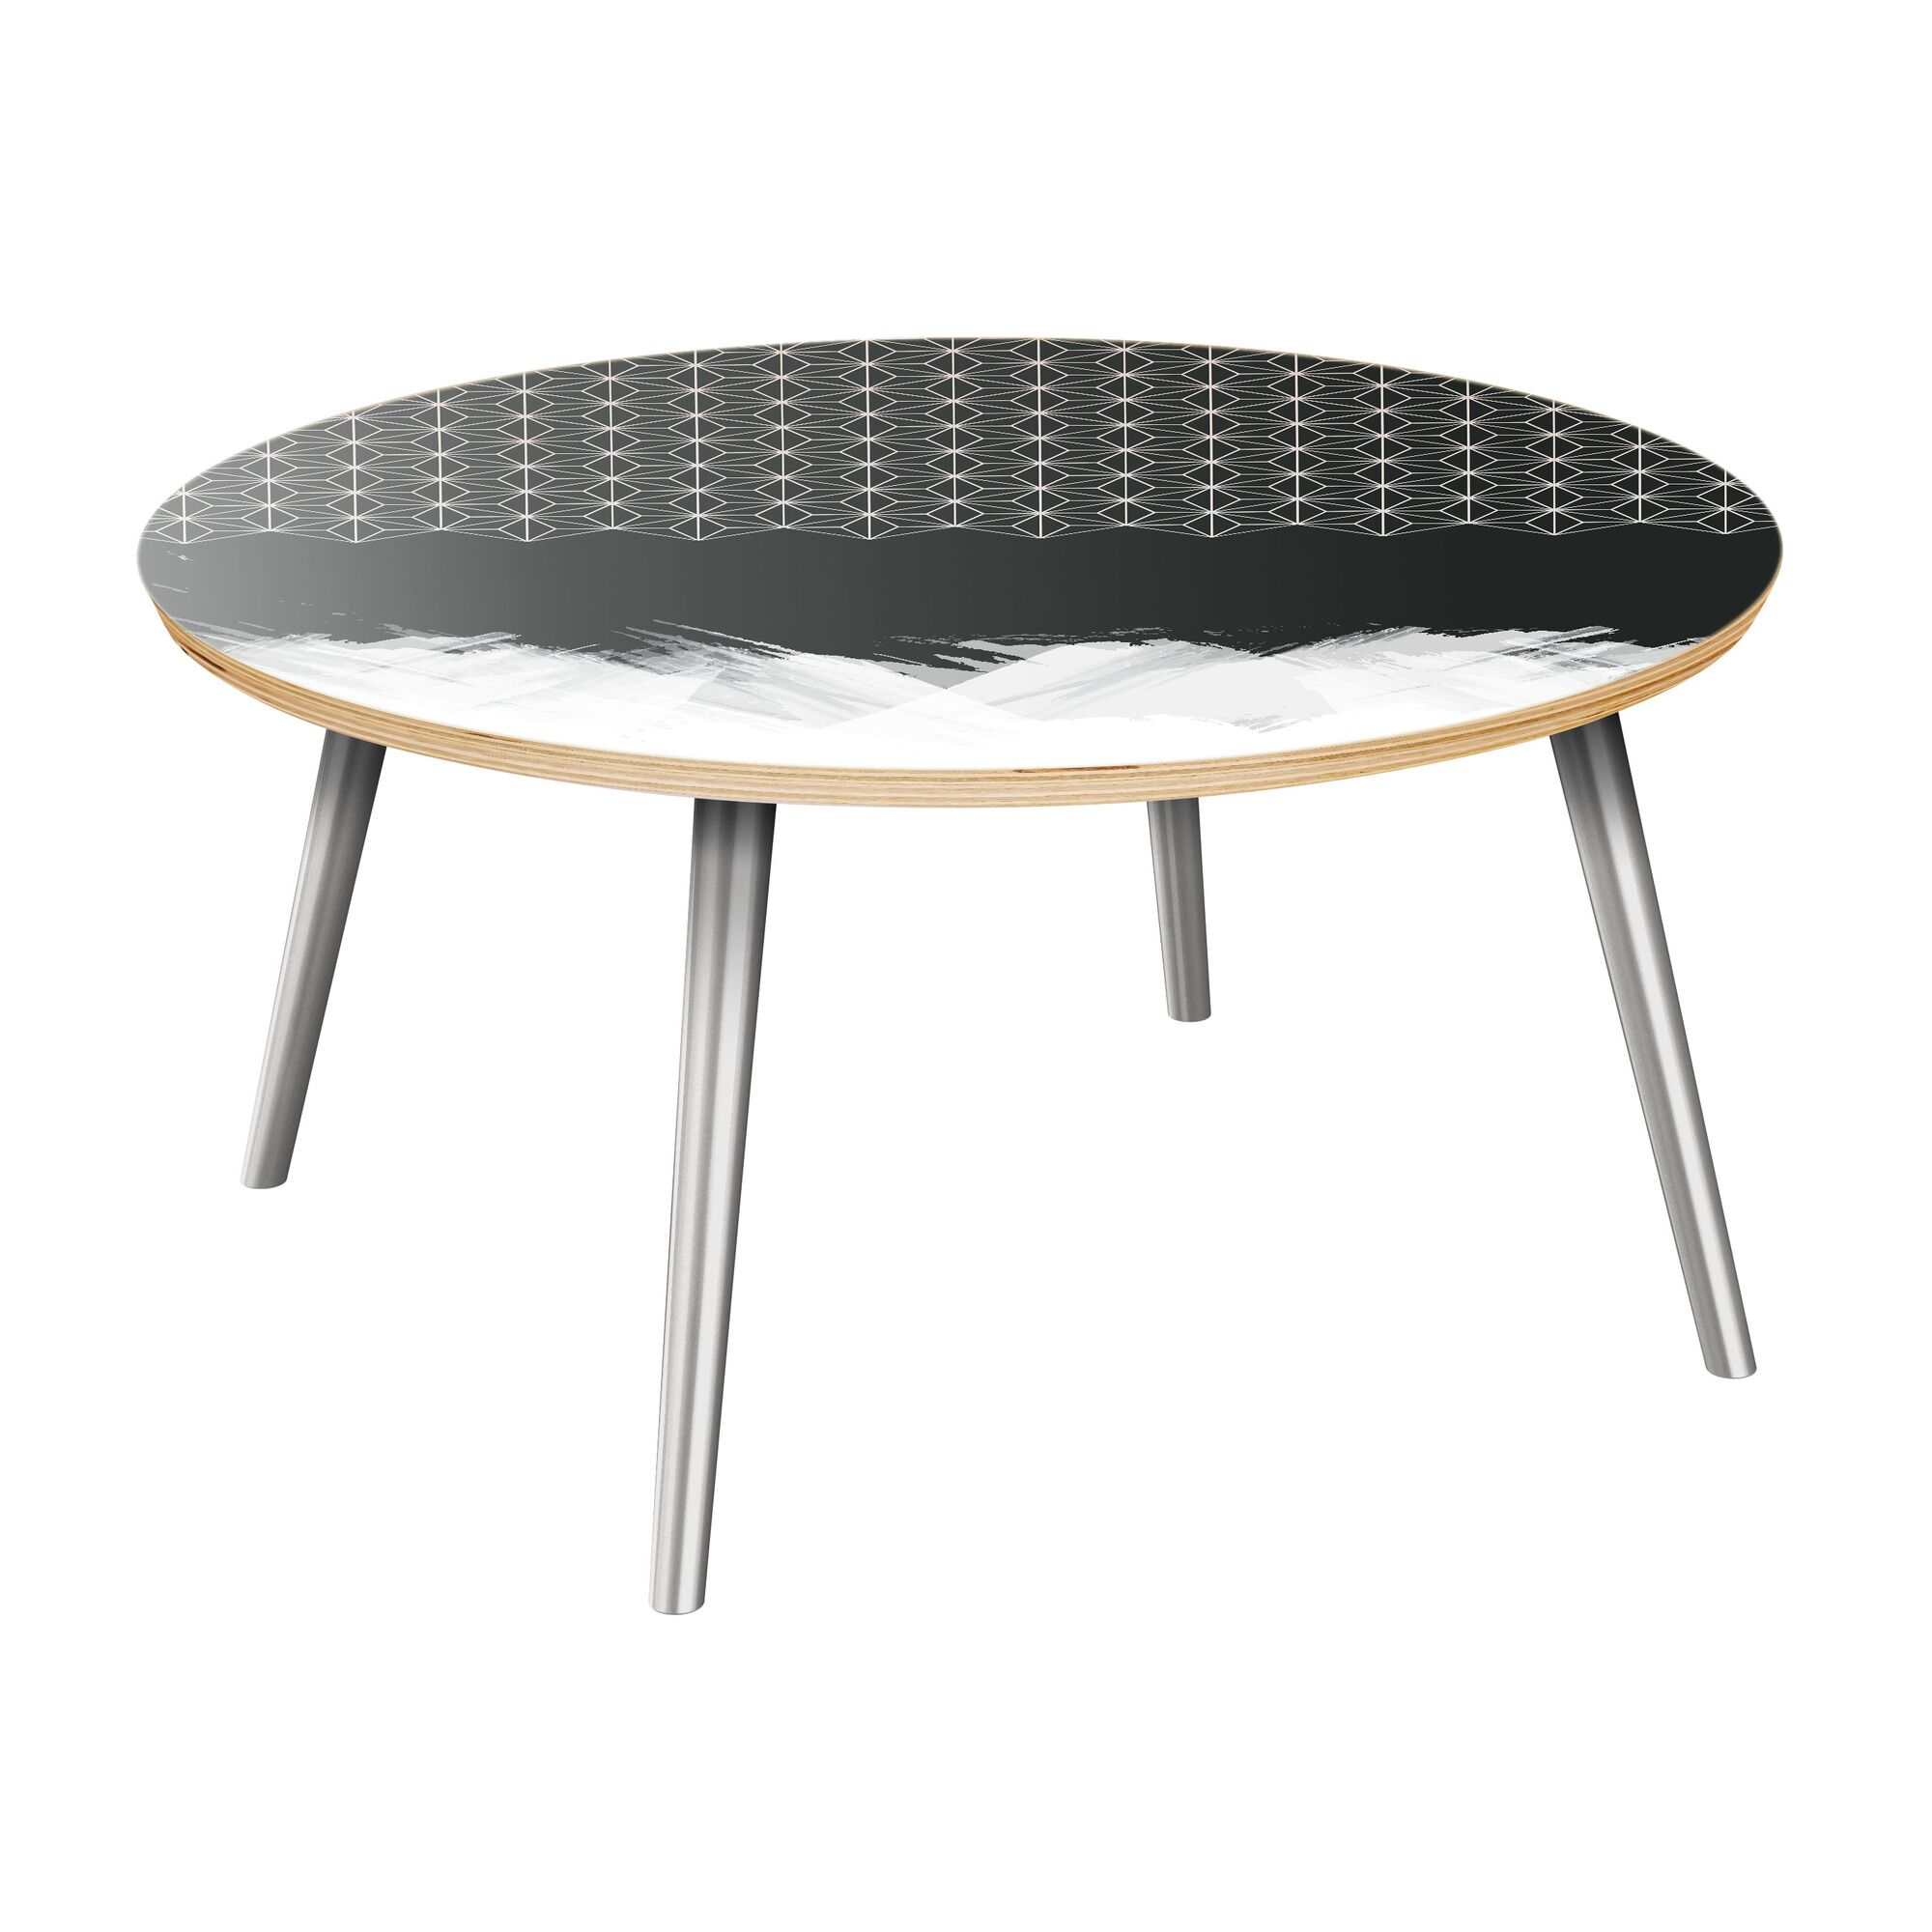 Evanoff Coffee Table Table Top Color: Natural, Table Base Color: Chrome